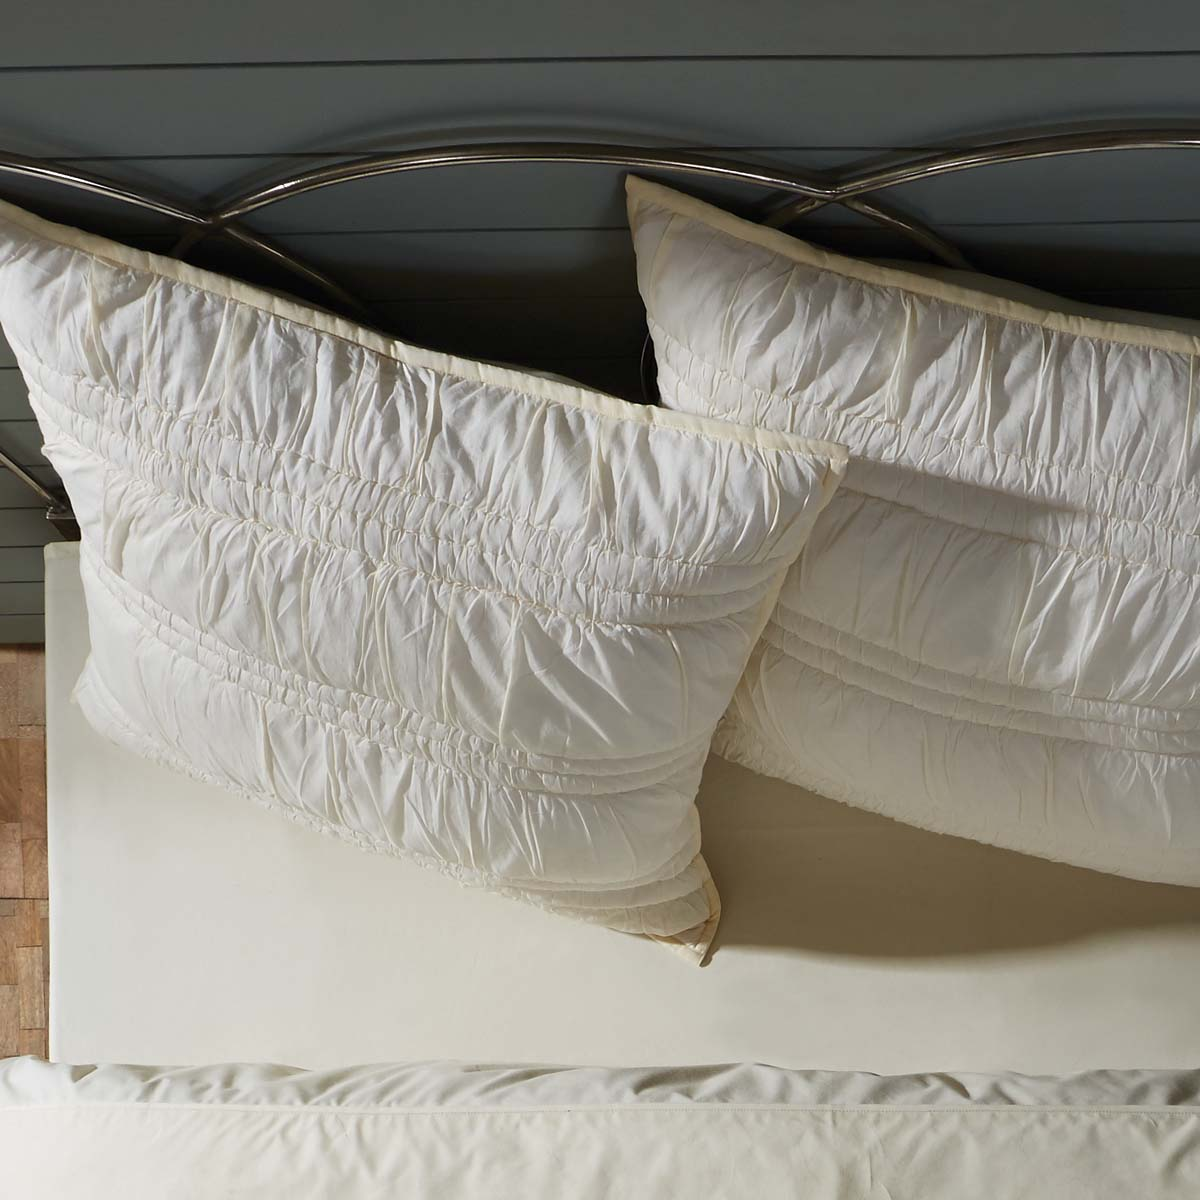 Vanilla Creme Pearl White Farmhouse Bedding Natasha Cotton Hand Quilted Ruched Ruffle Voile Solid Color Euro Sham